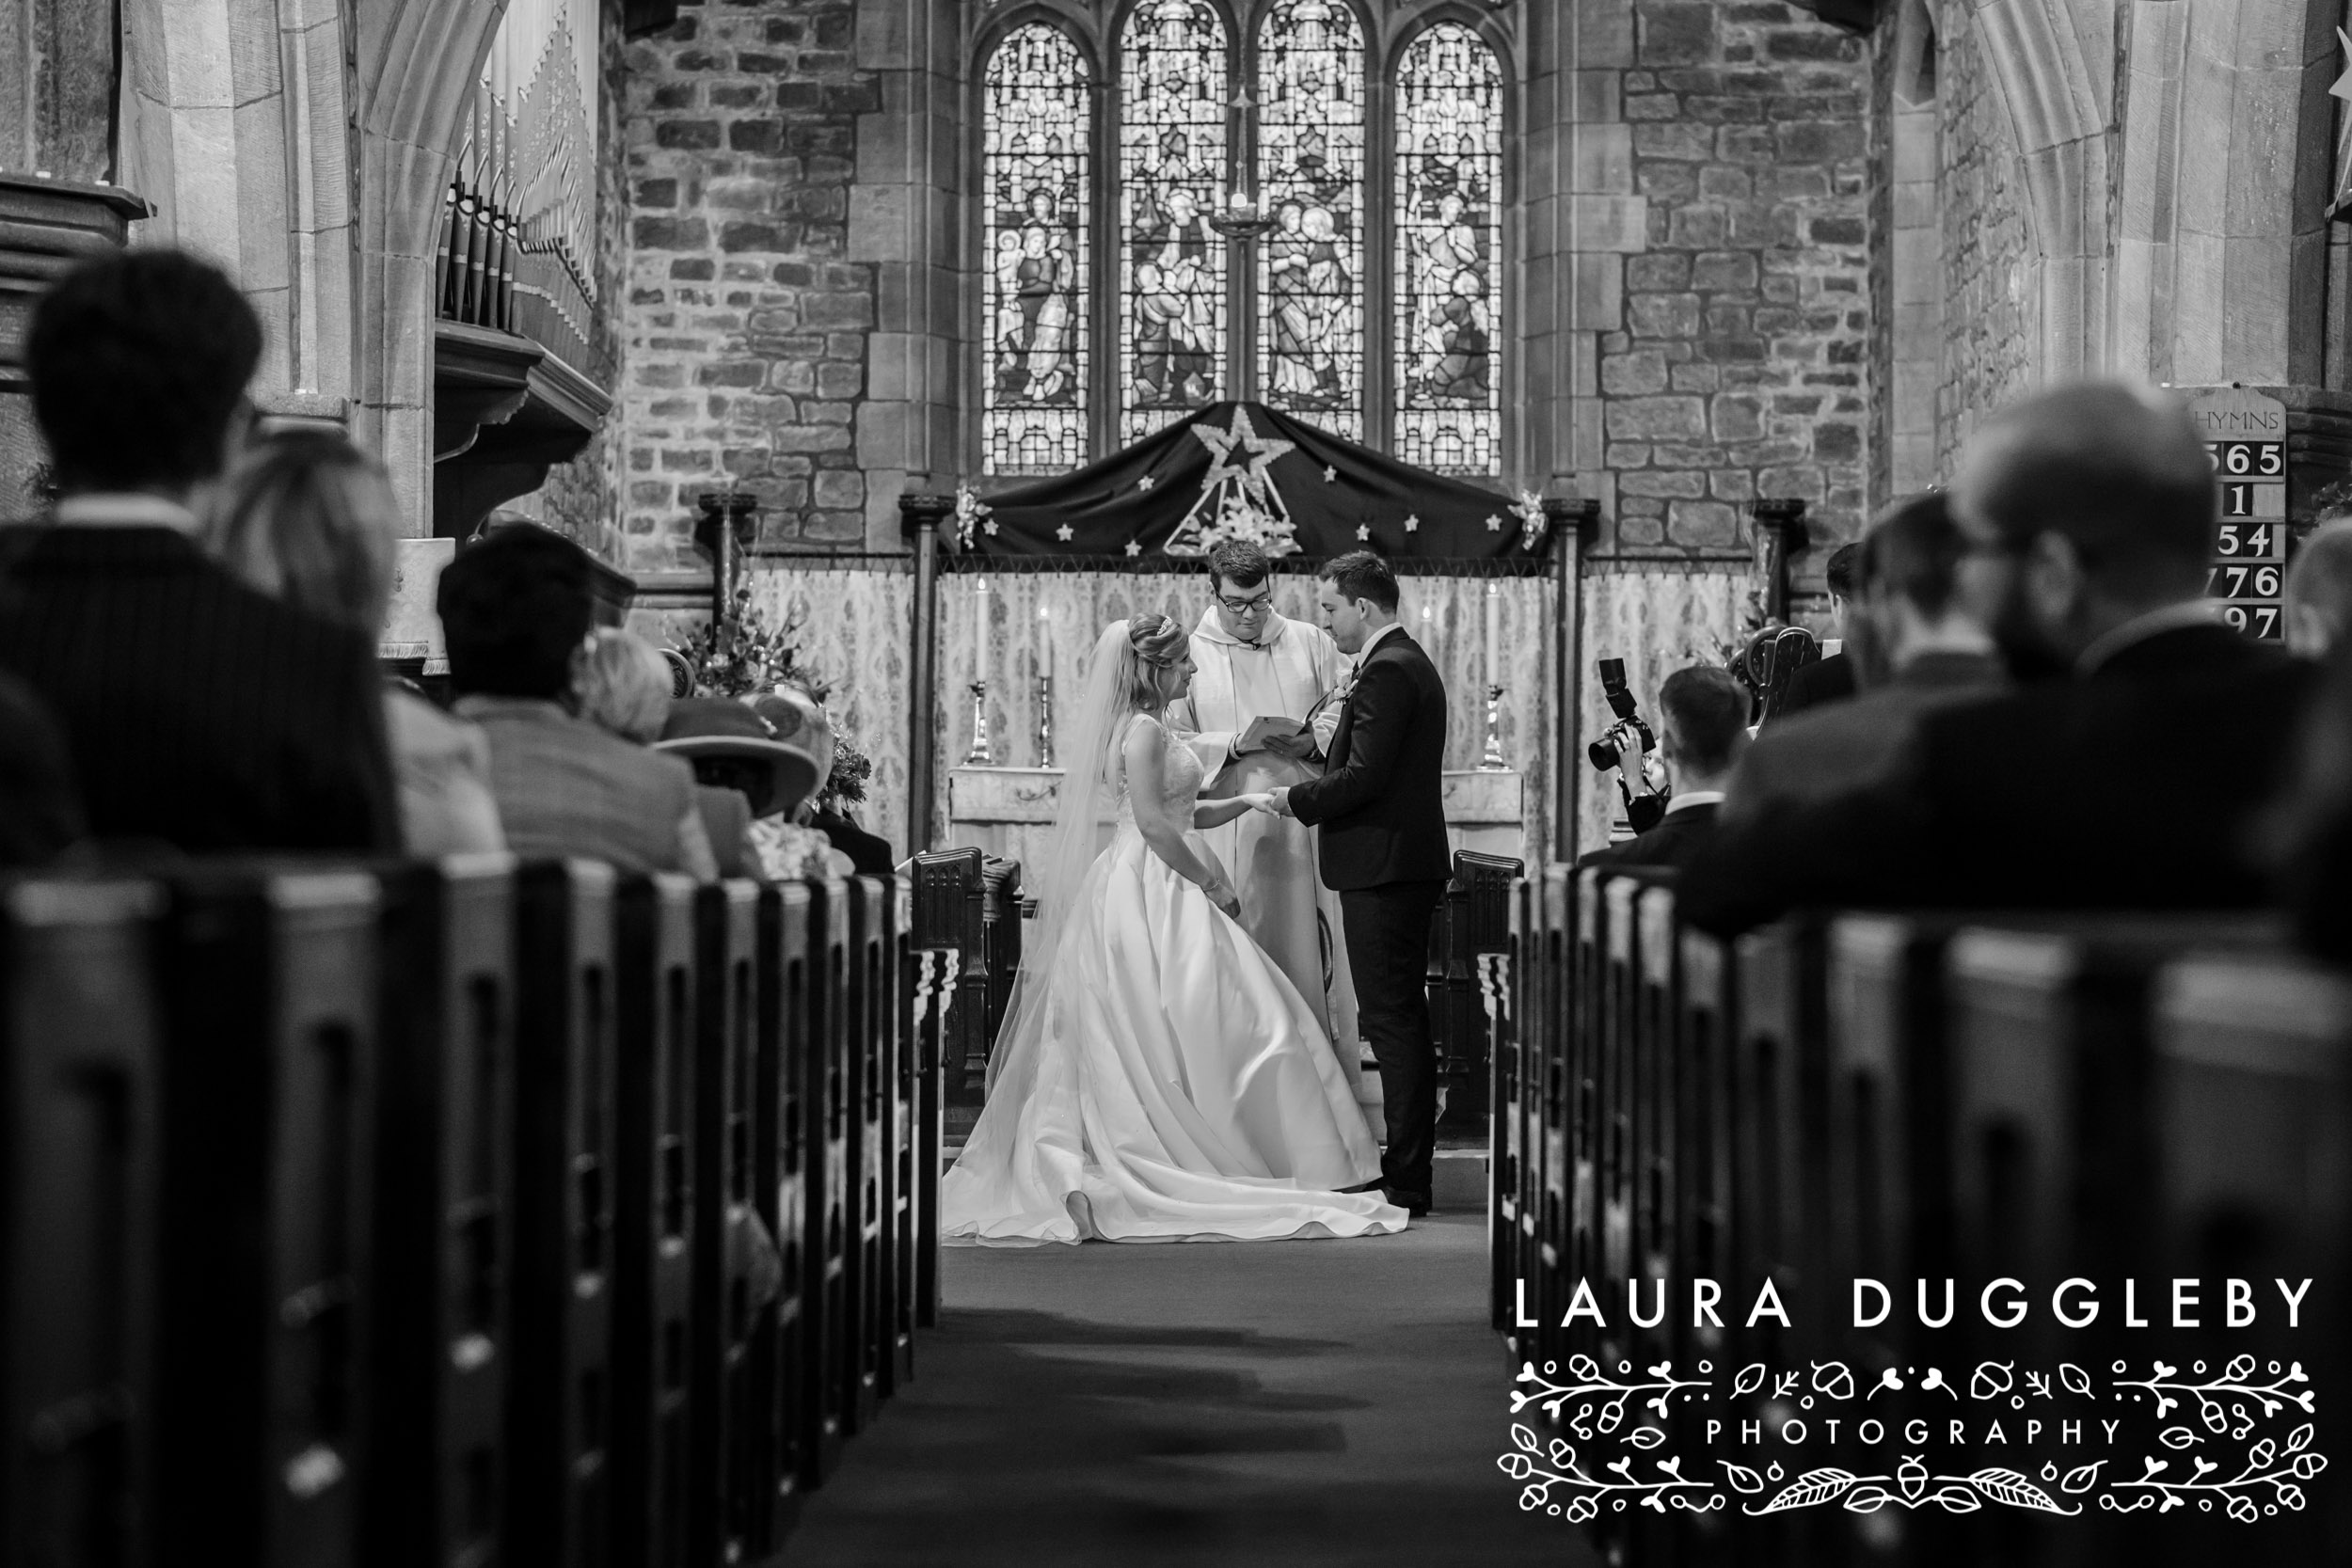 Laura Duggleby Stanley House Wedding Photographer-15.jpg